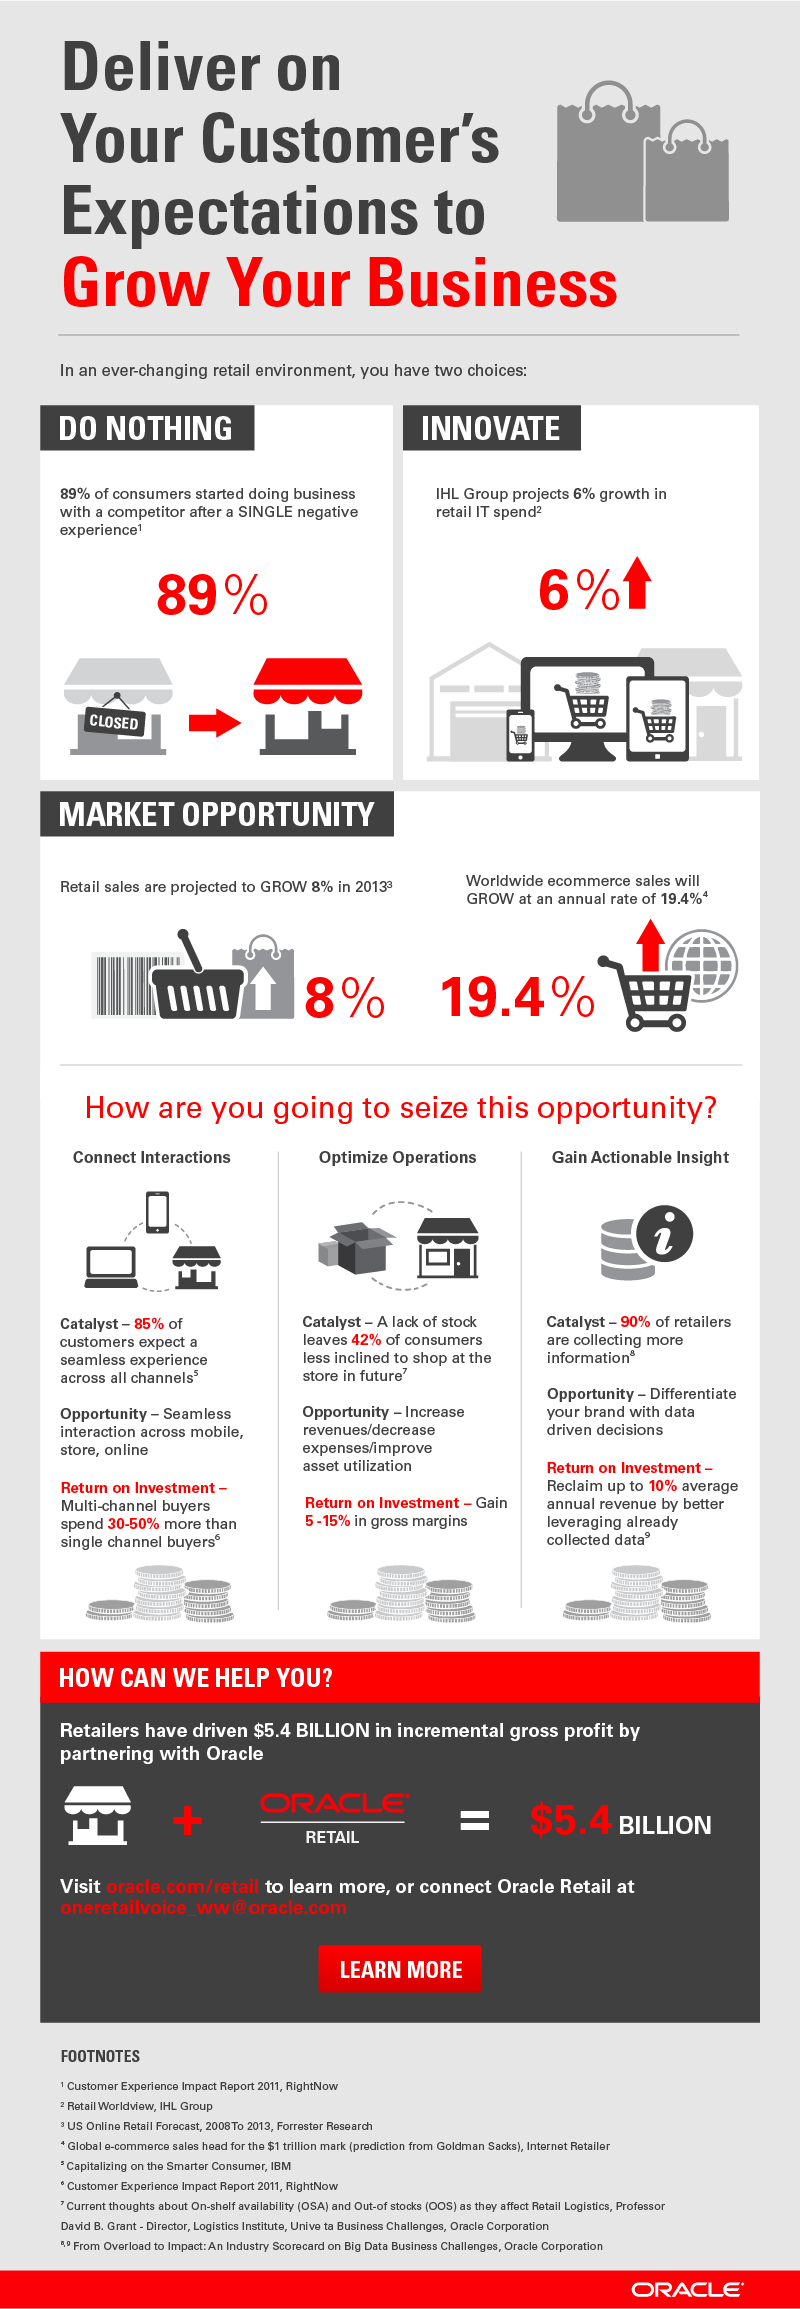 19975-Oracle-Retail-experience-Infographic-V06-MM.png